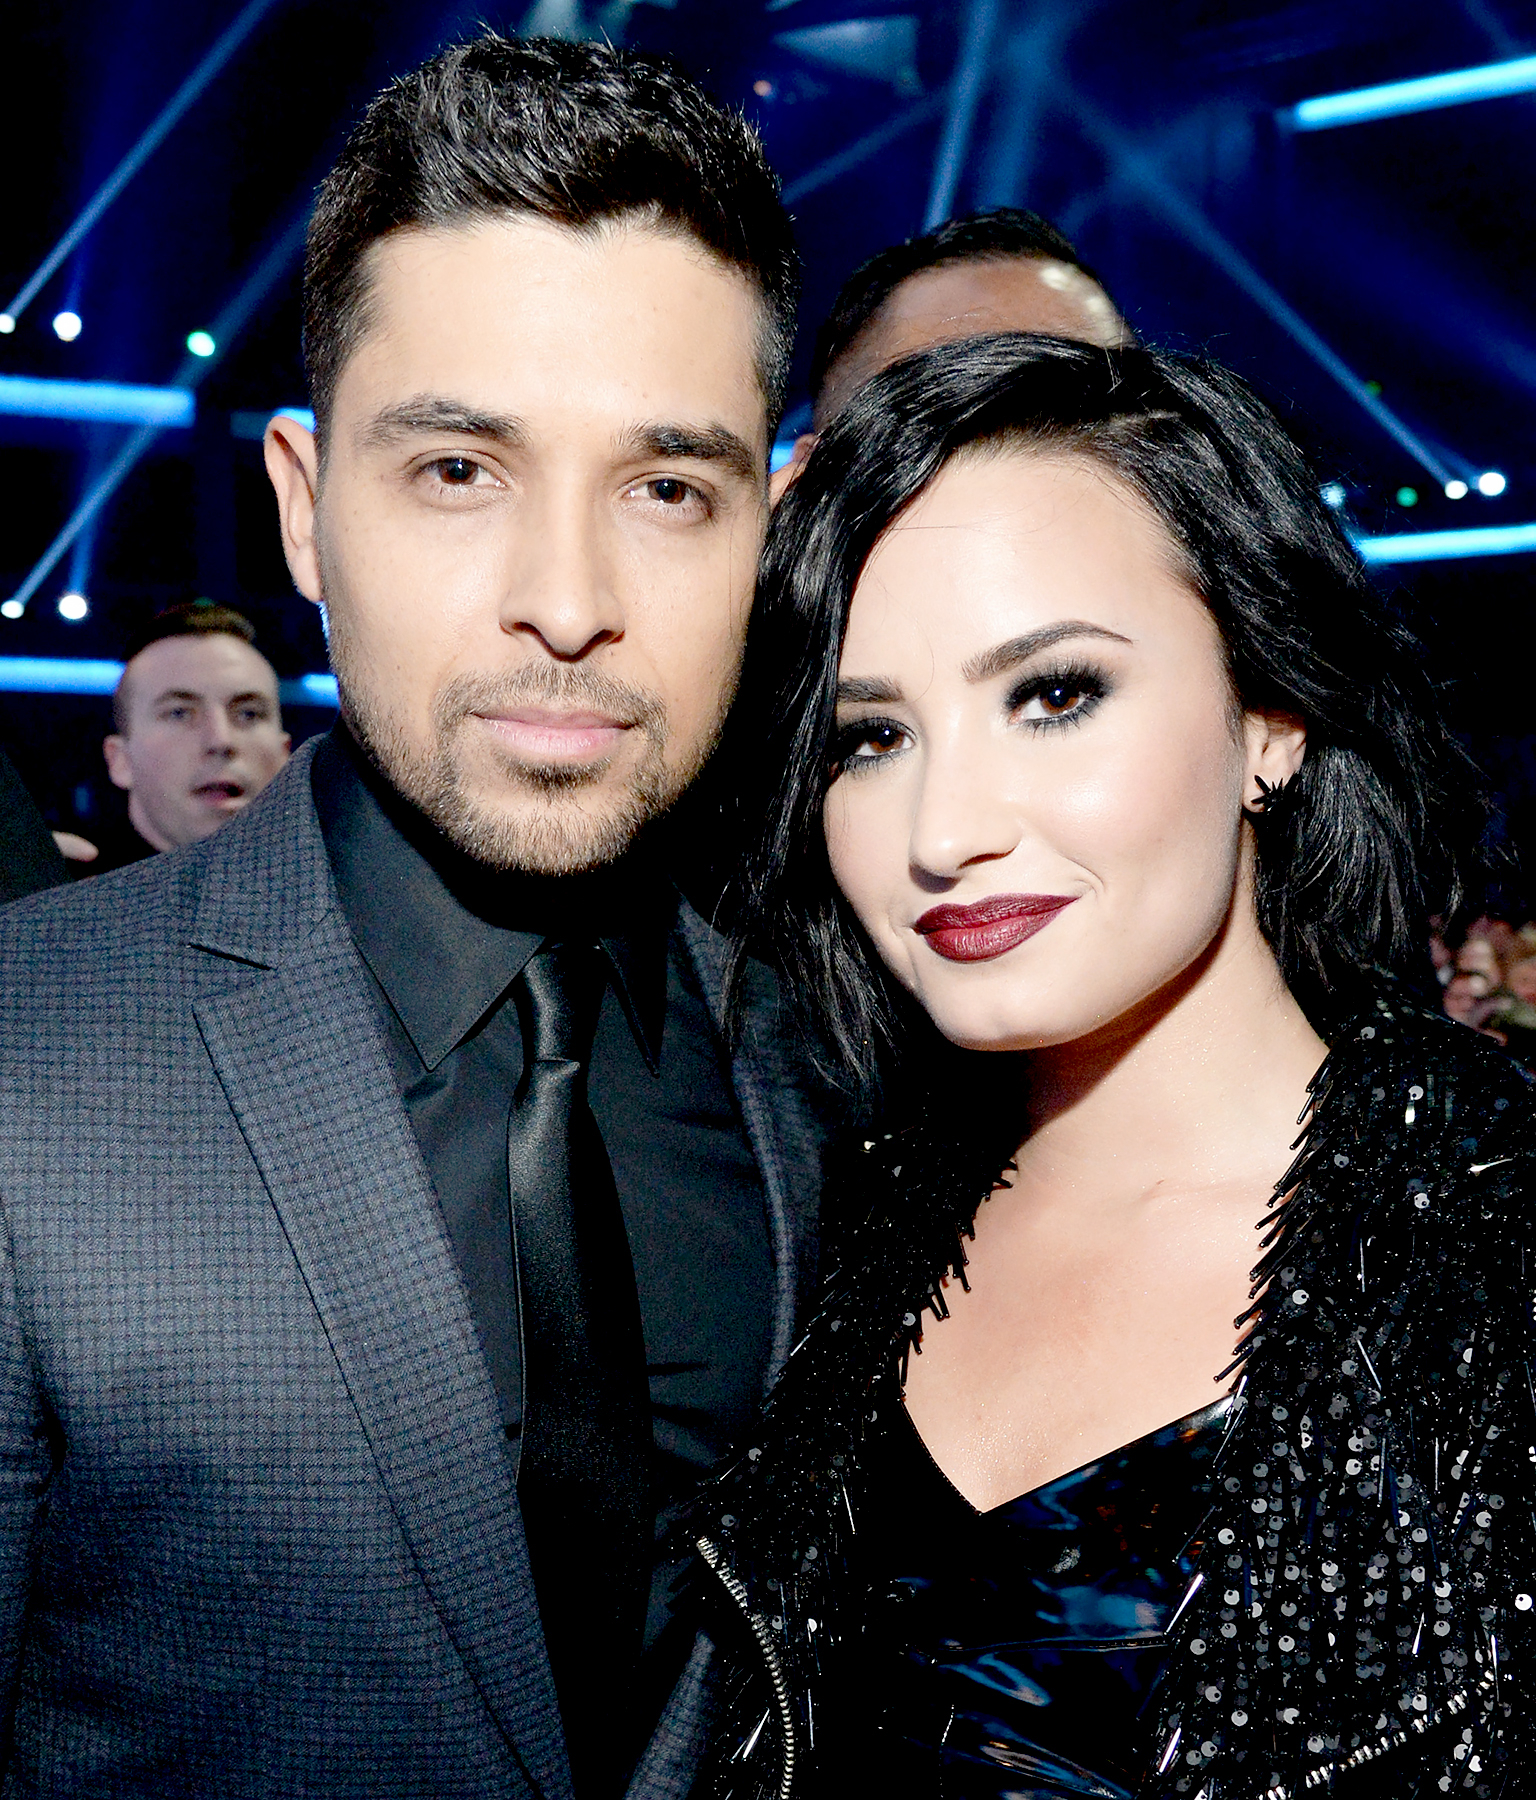 Wilmer Valderrama and Demi Lovato attend the 2015 American Music Awards.